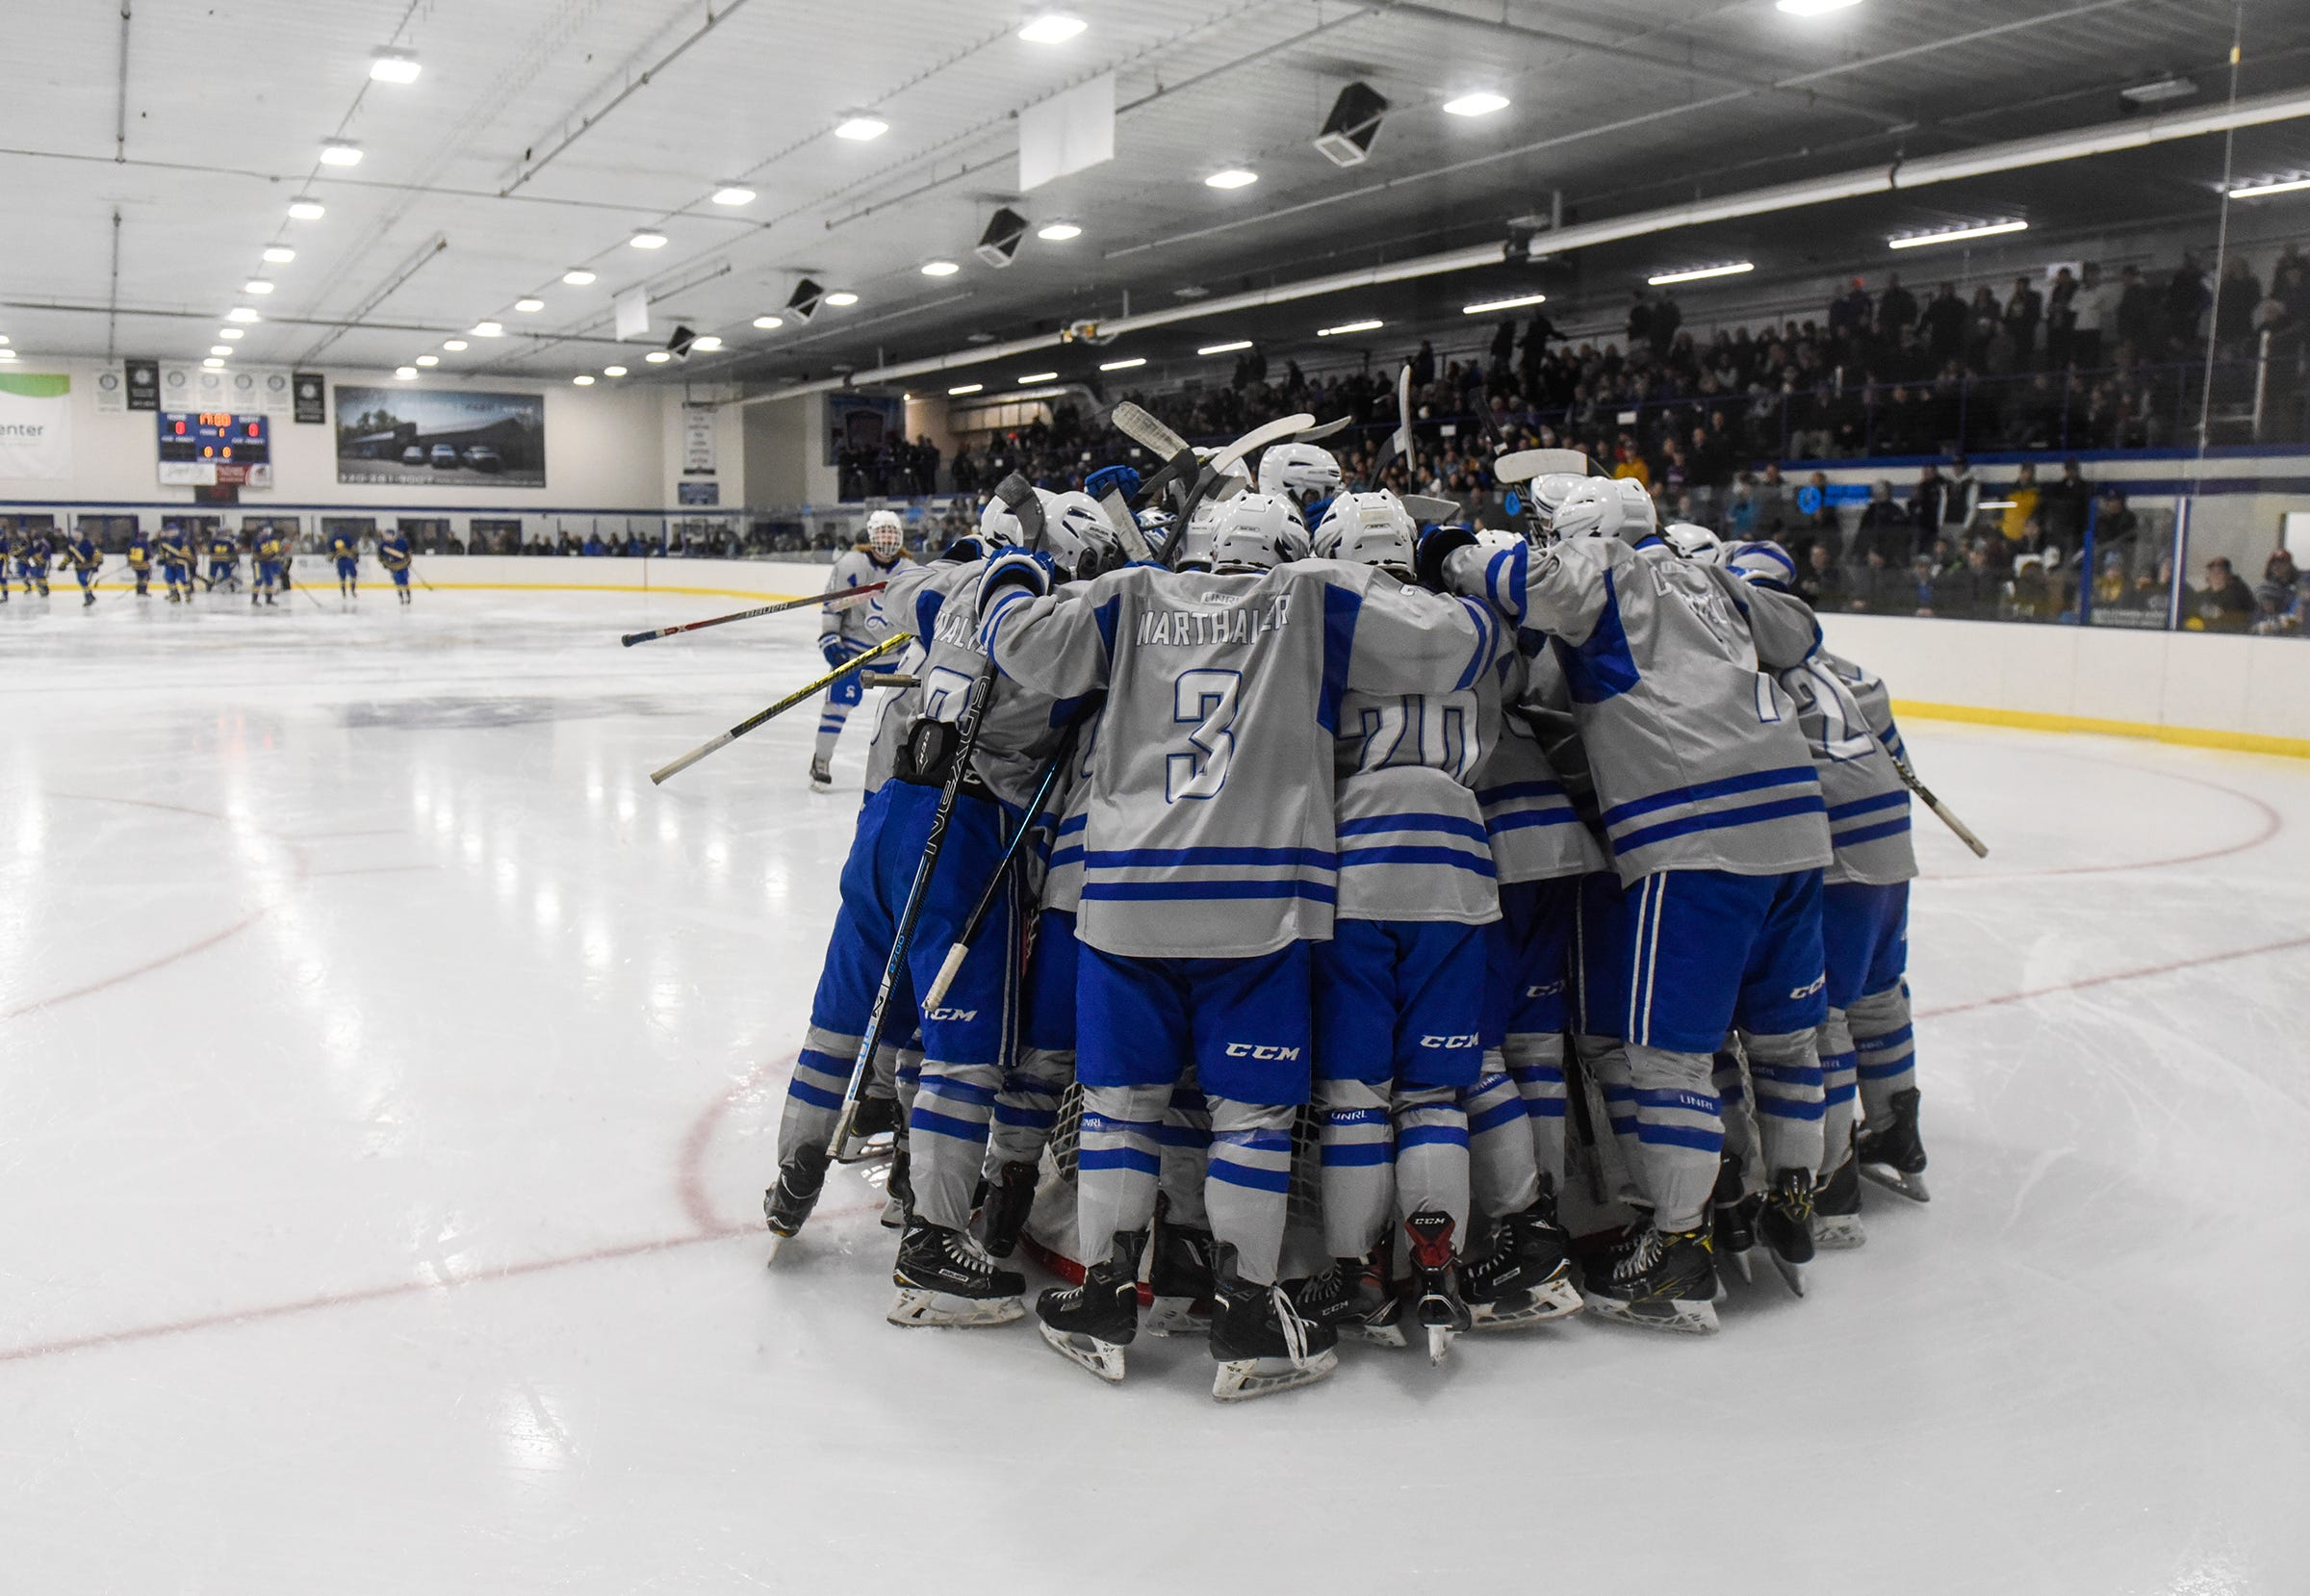 Sartell players gather around their goal at the start of the game.